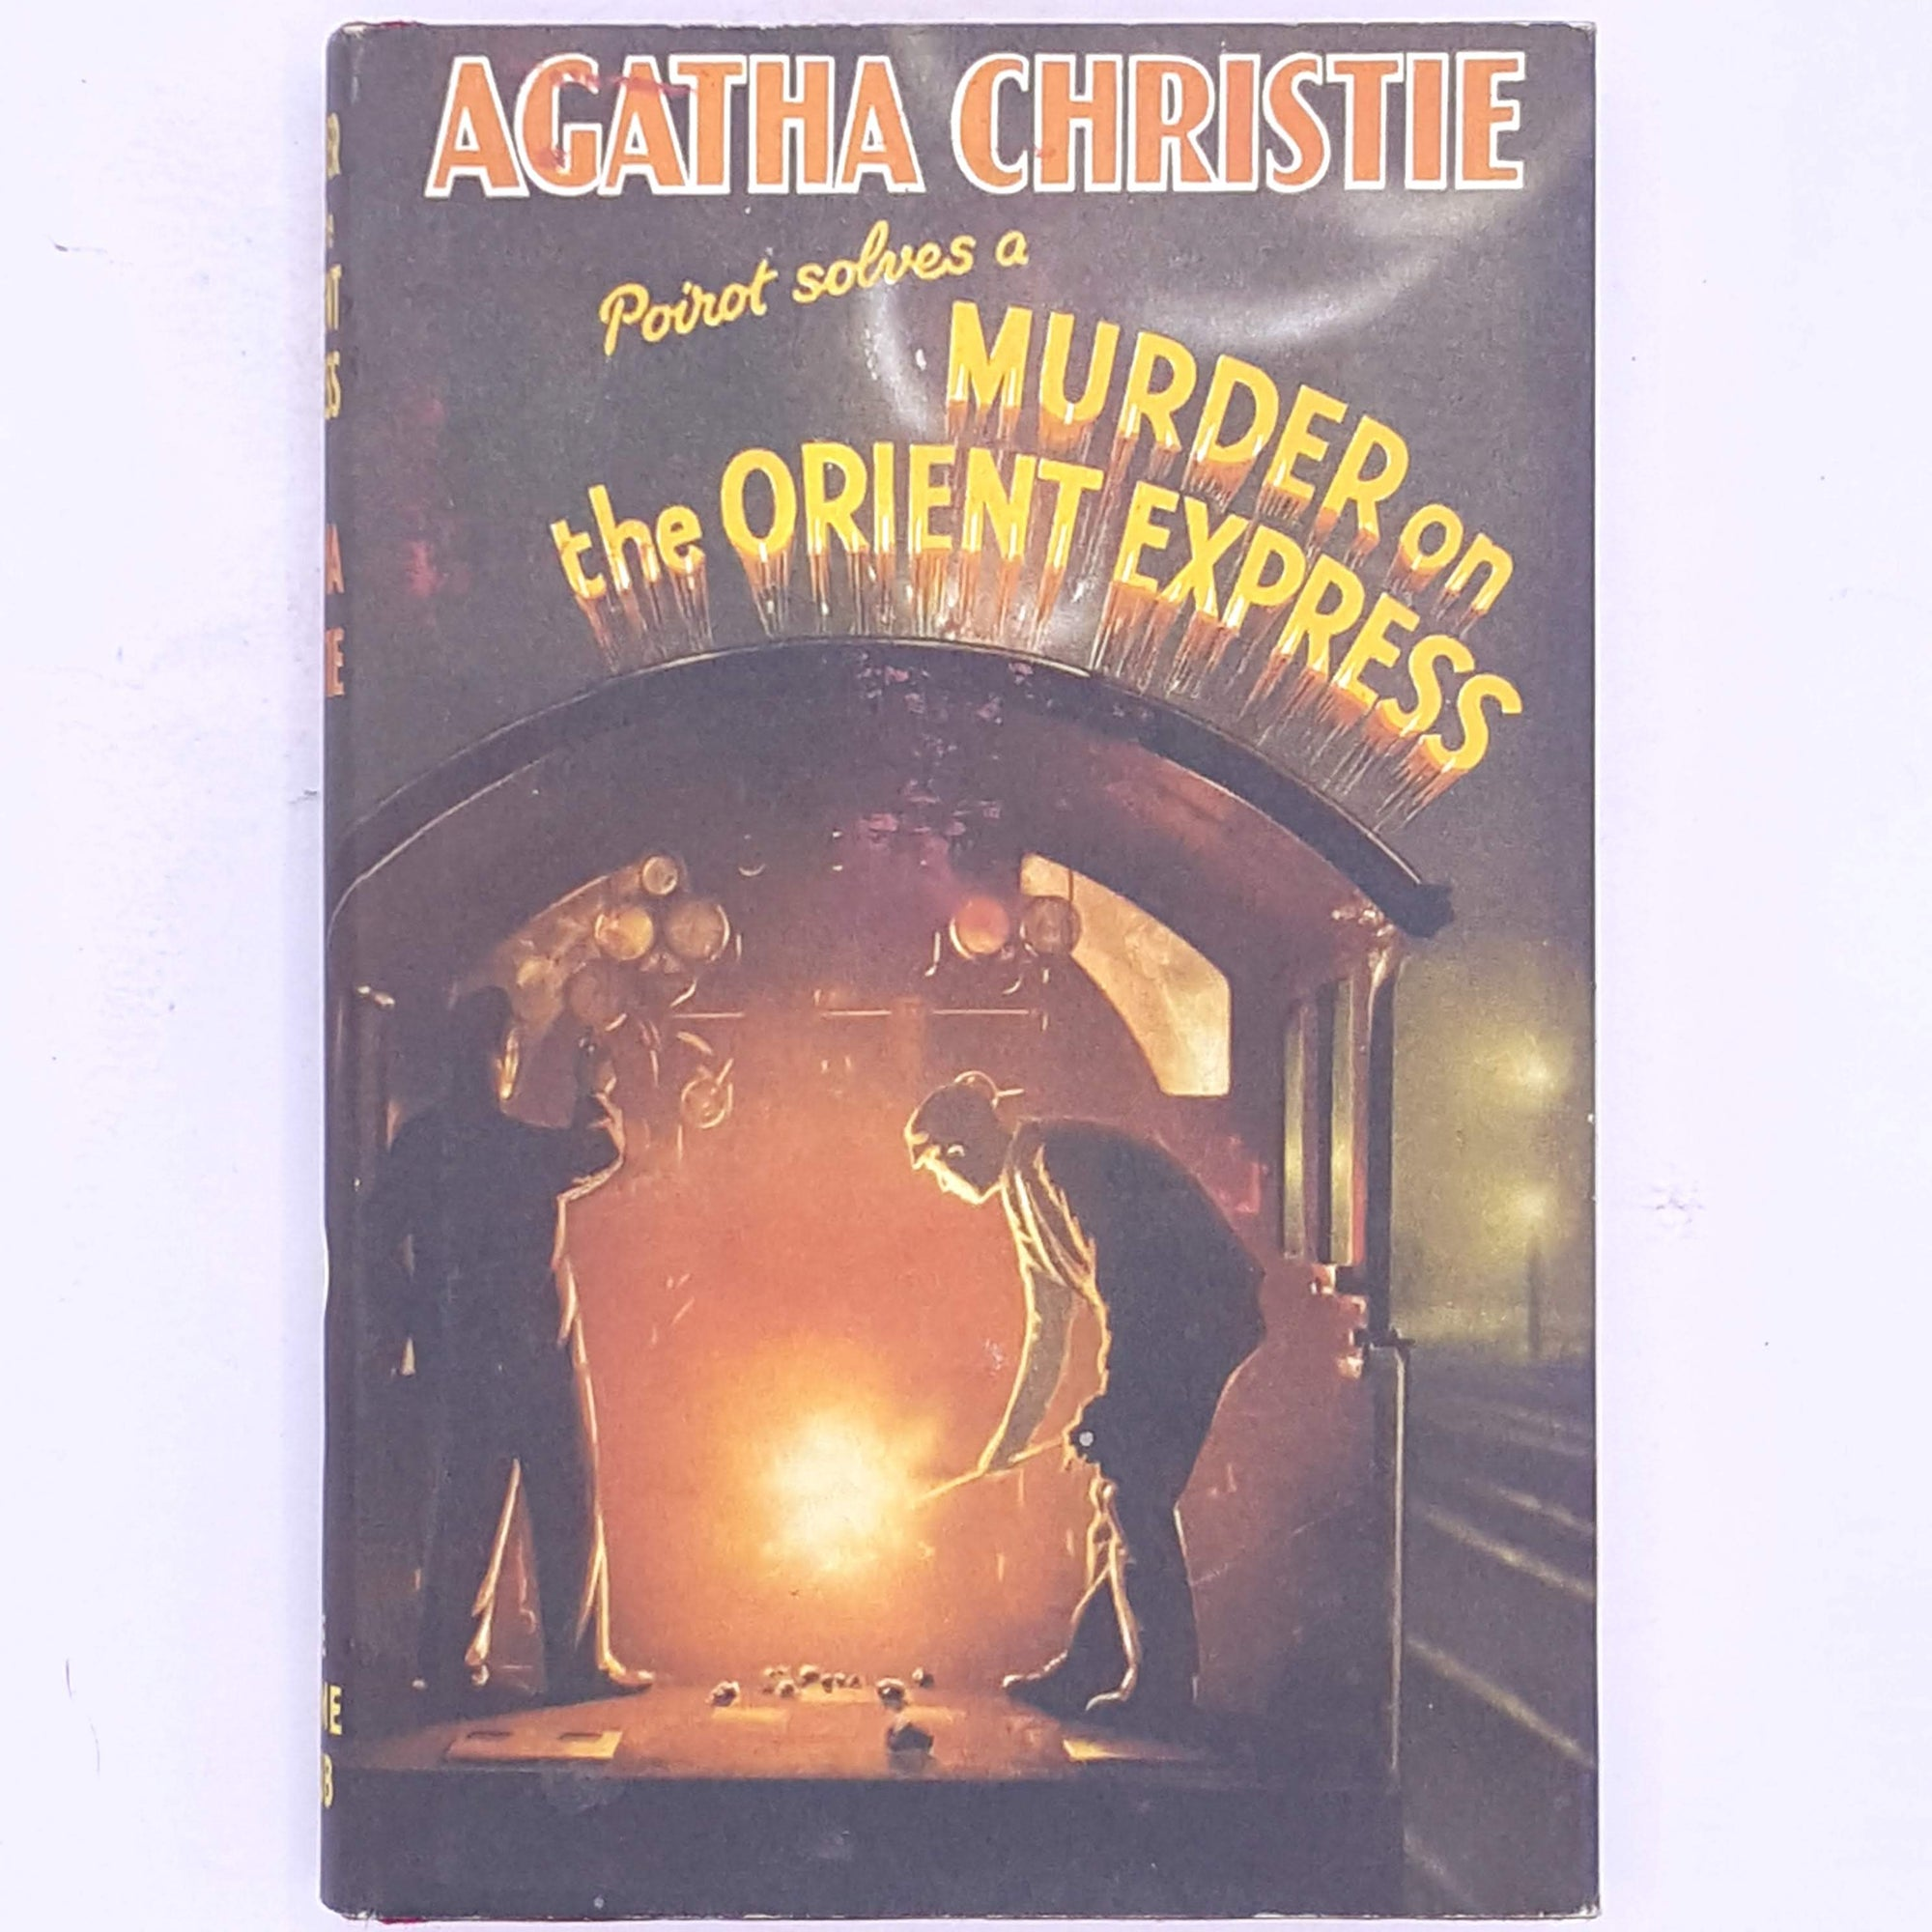 Agatha Christie, Poirot solves a Murder on the Orient Express.